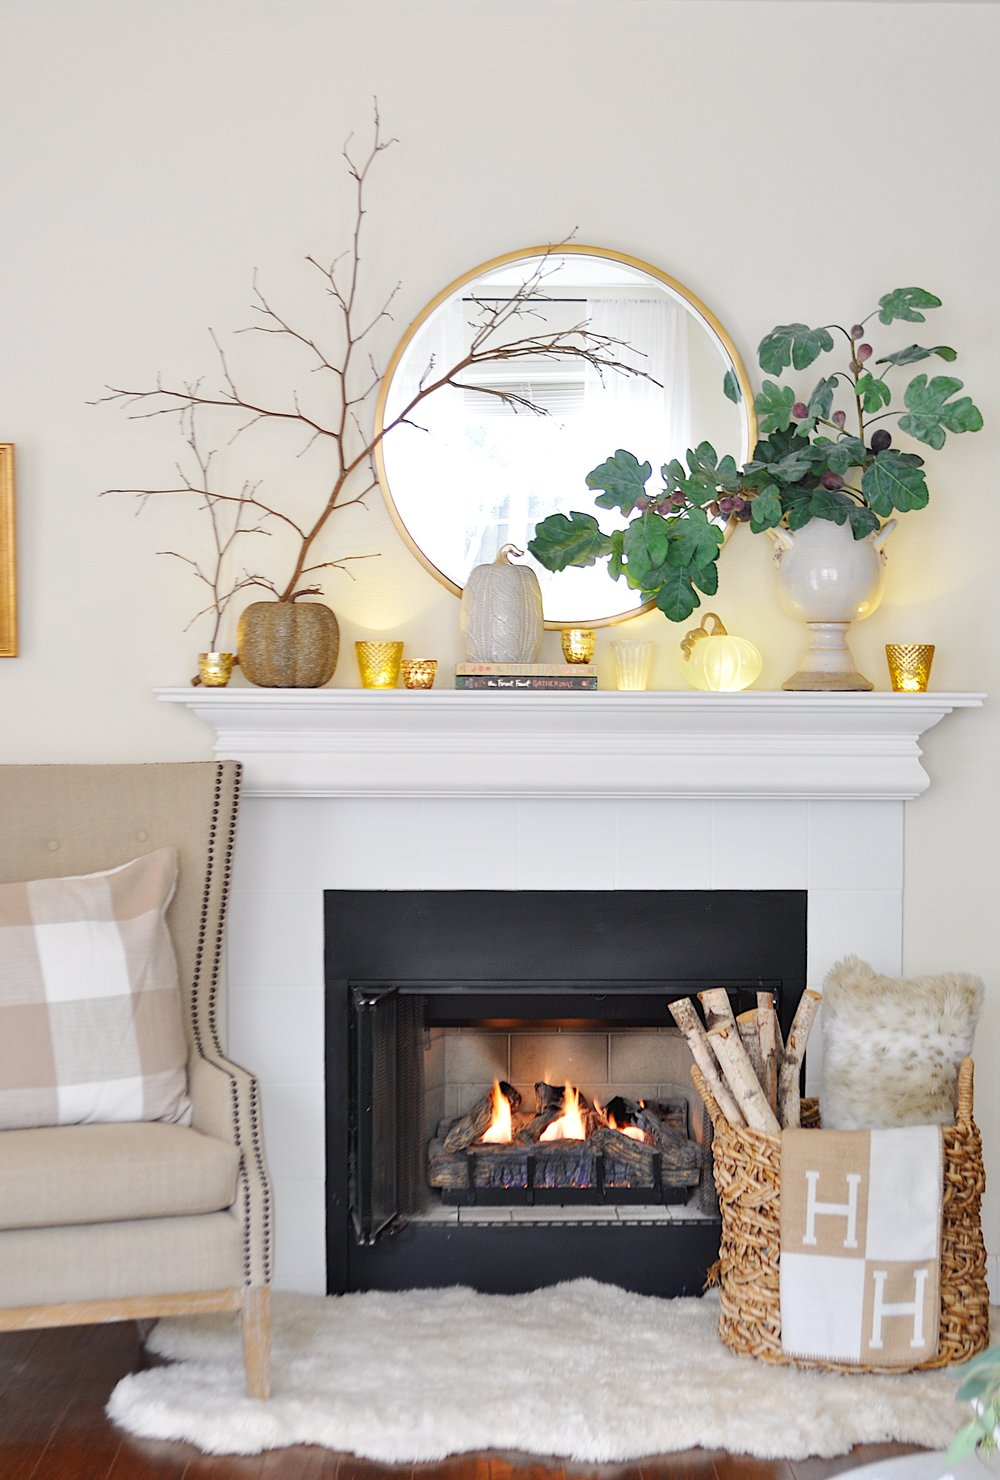 5 Fabulous Fall Mantel Decorating Ideas — 2 Ladies & A Chair